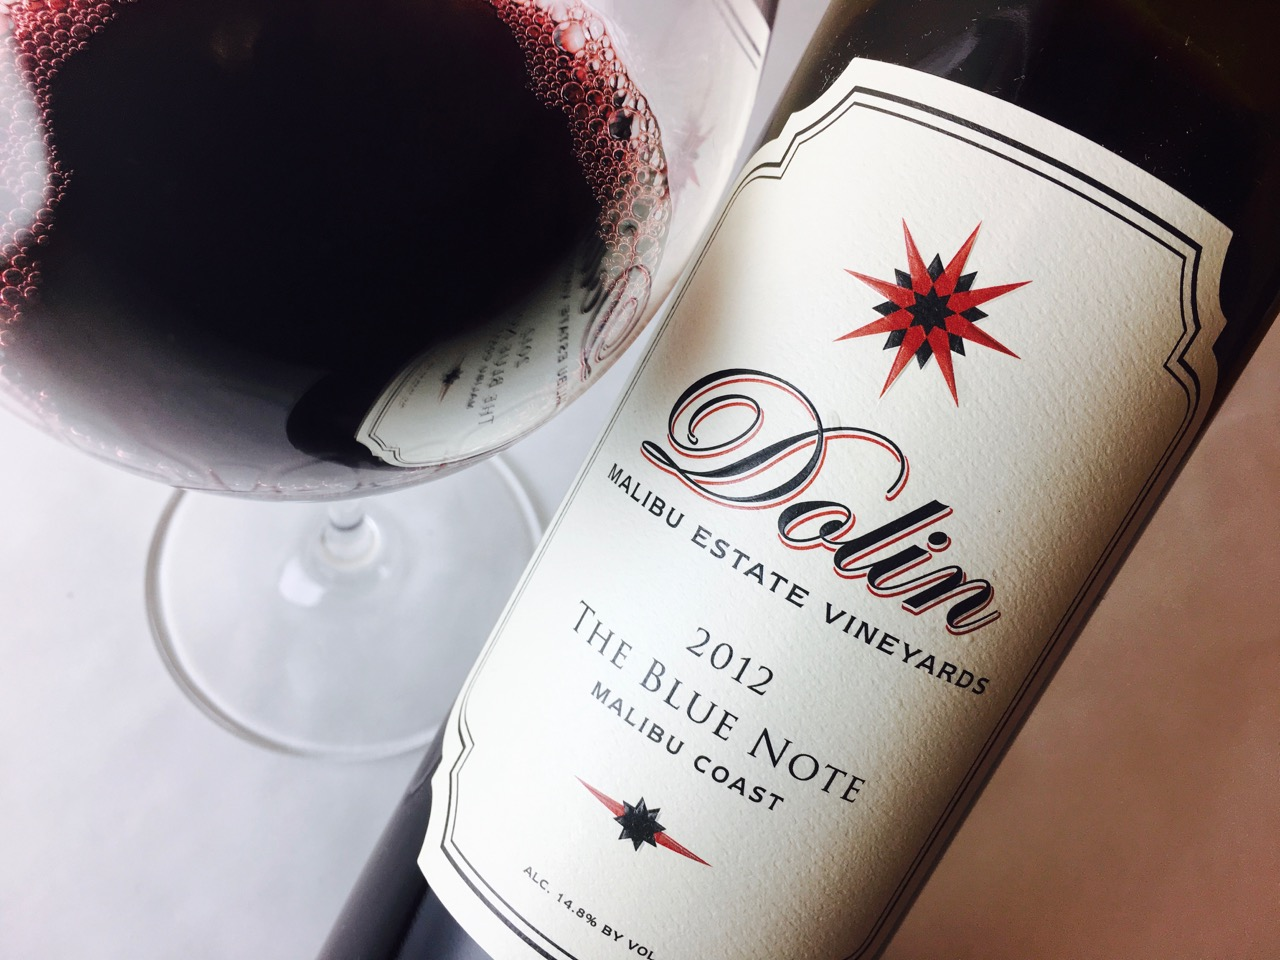 2012 Dolin Red Blend The Blue Note Malibu Coast